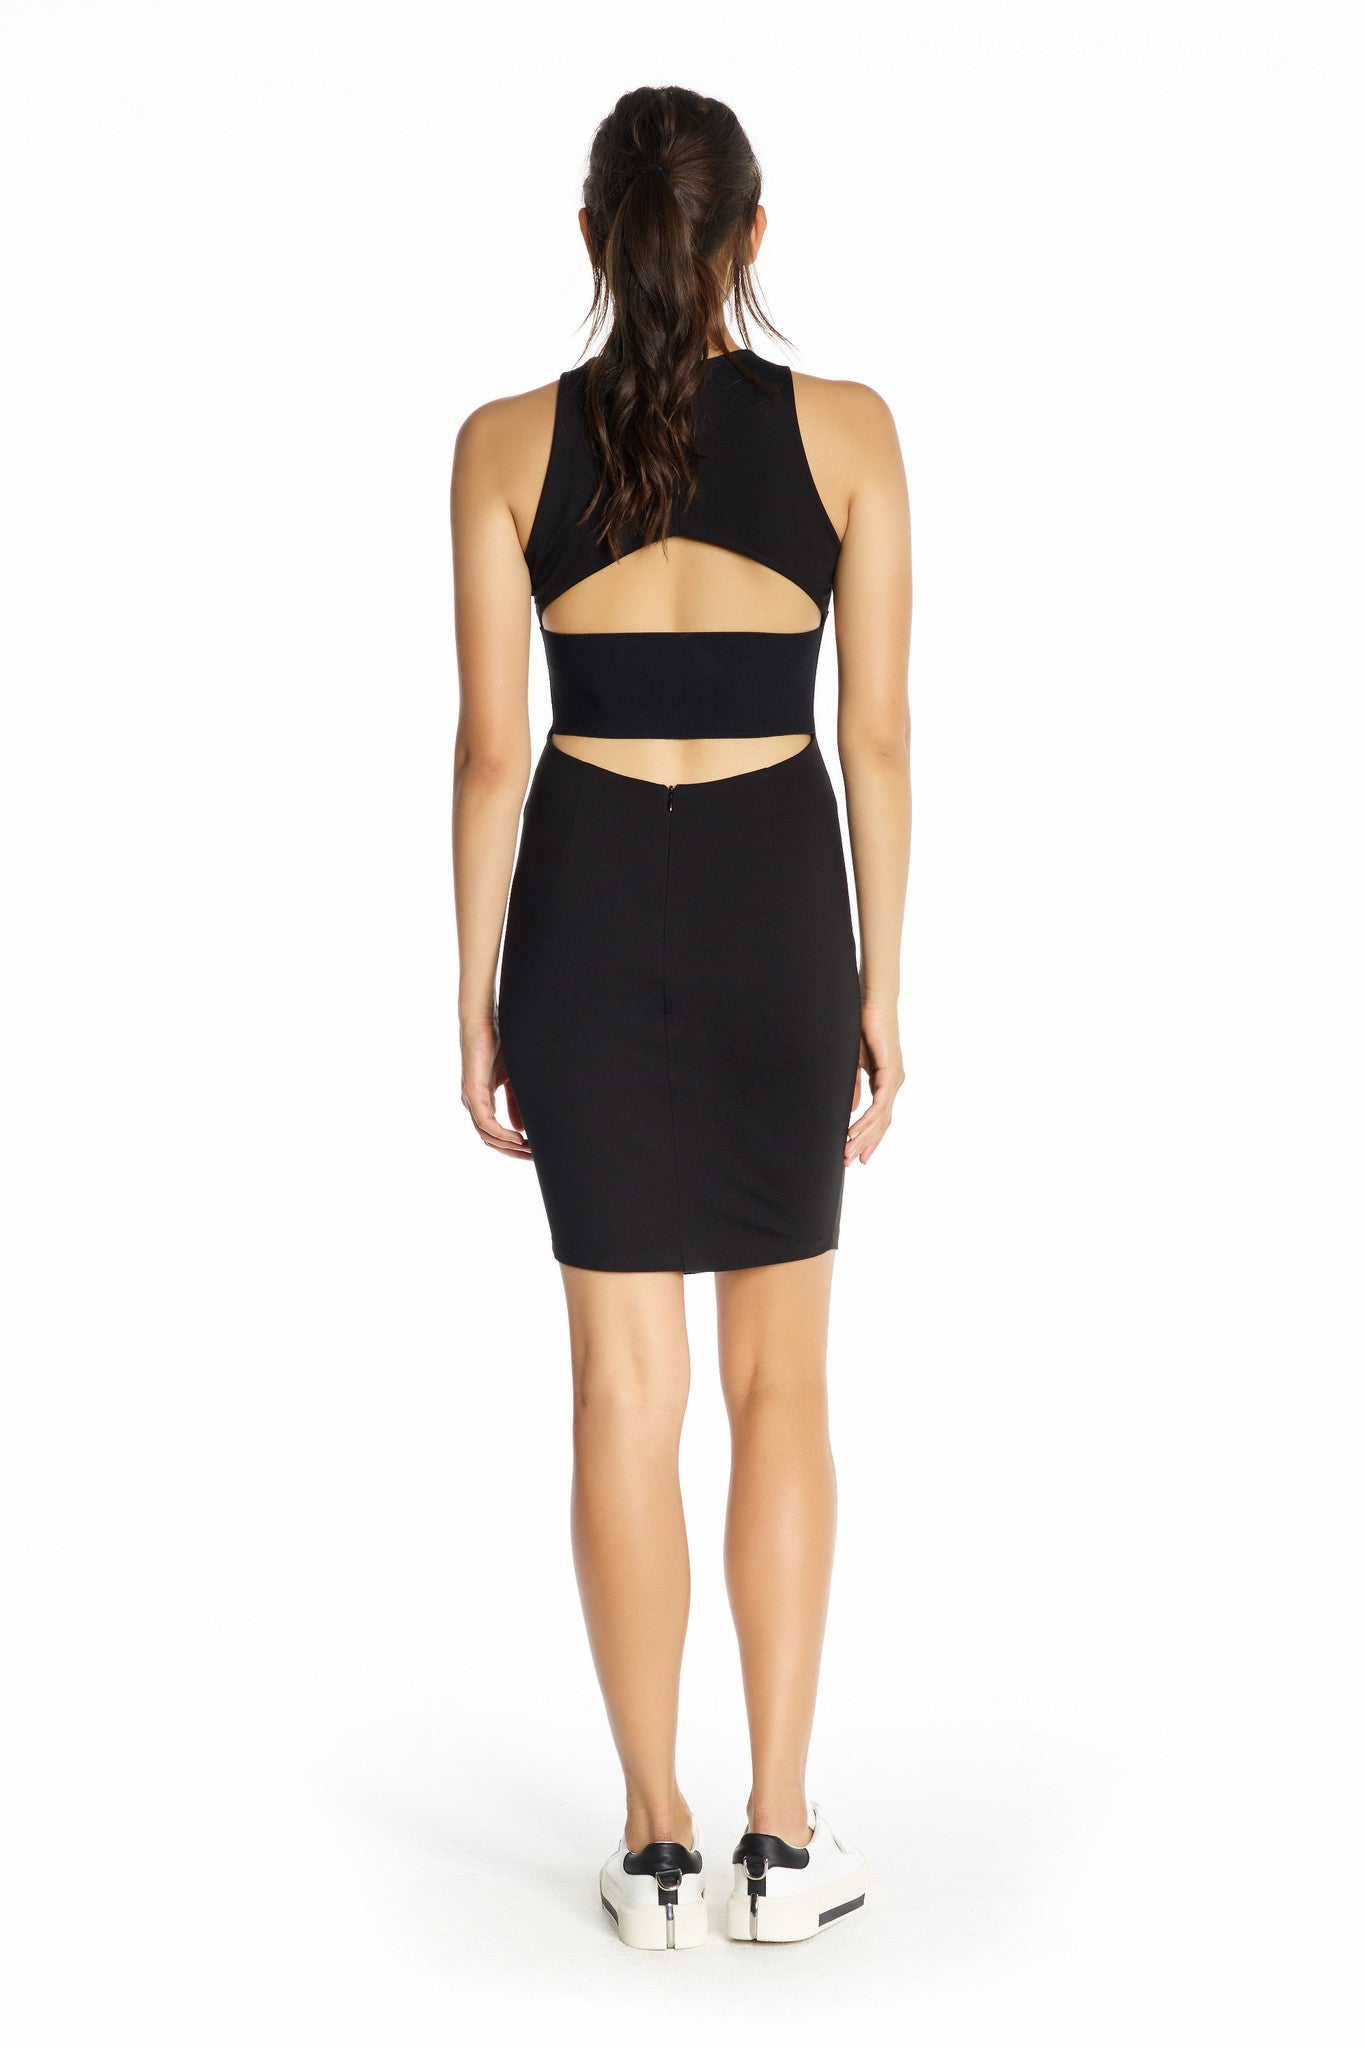 OPEN-BACK BANDEAU DRESS DRESSES by KENDALL + KYLIE